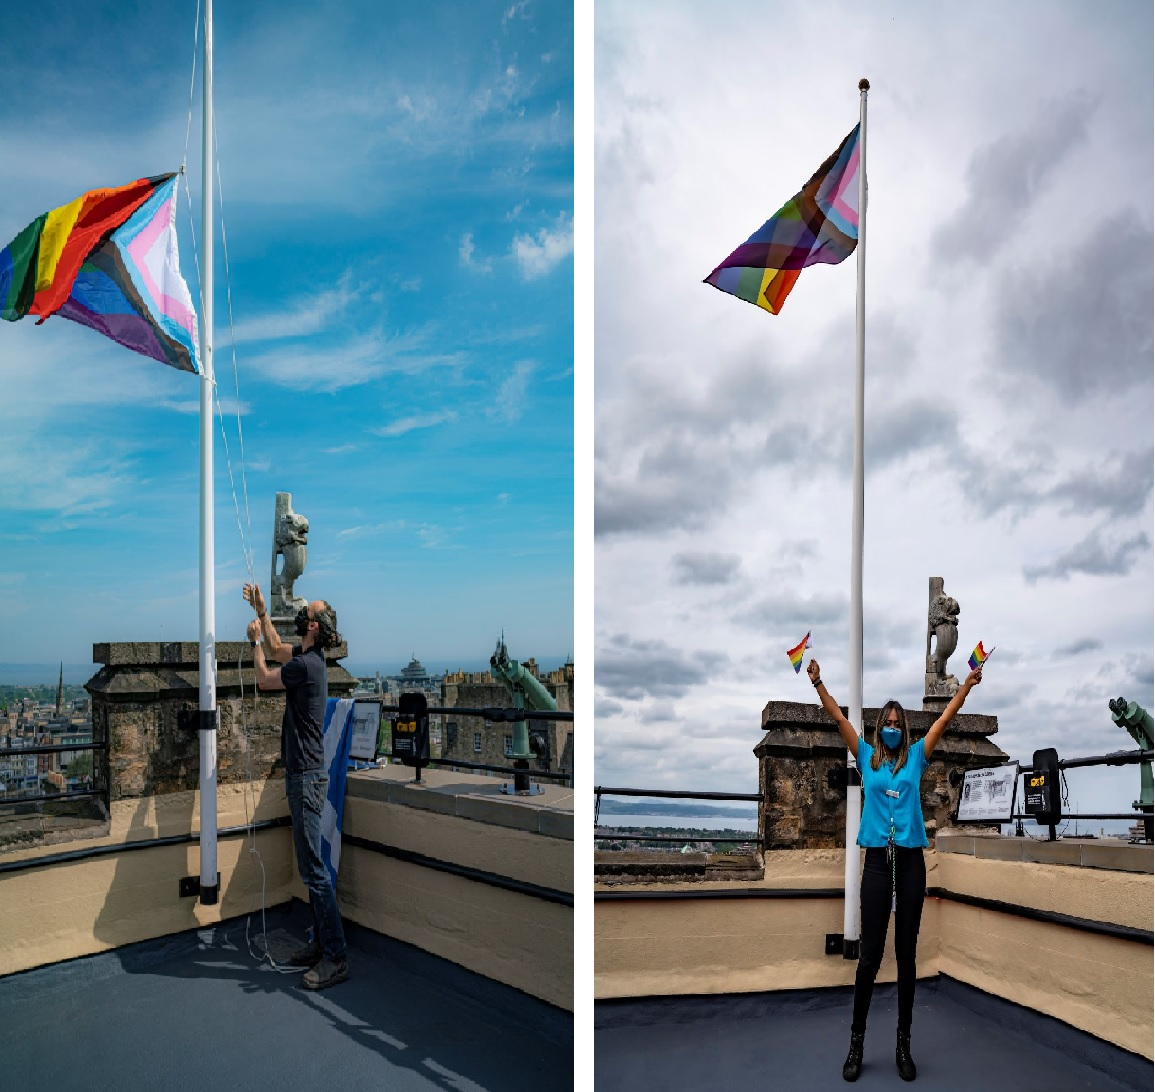 The Progress Flag on the rooftop at Camera Obscura